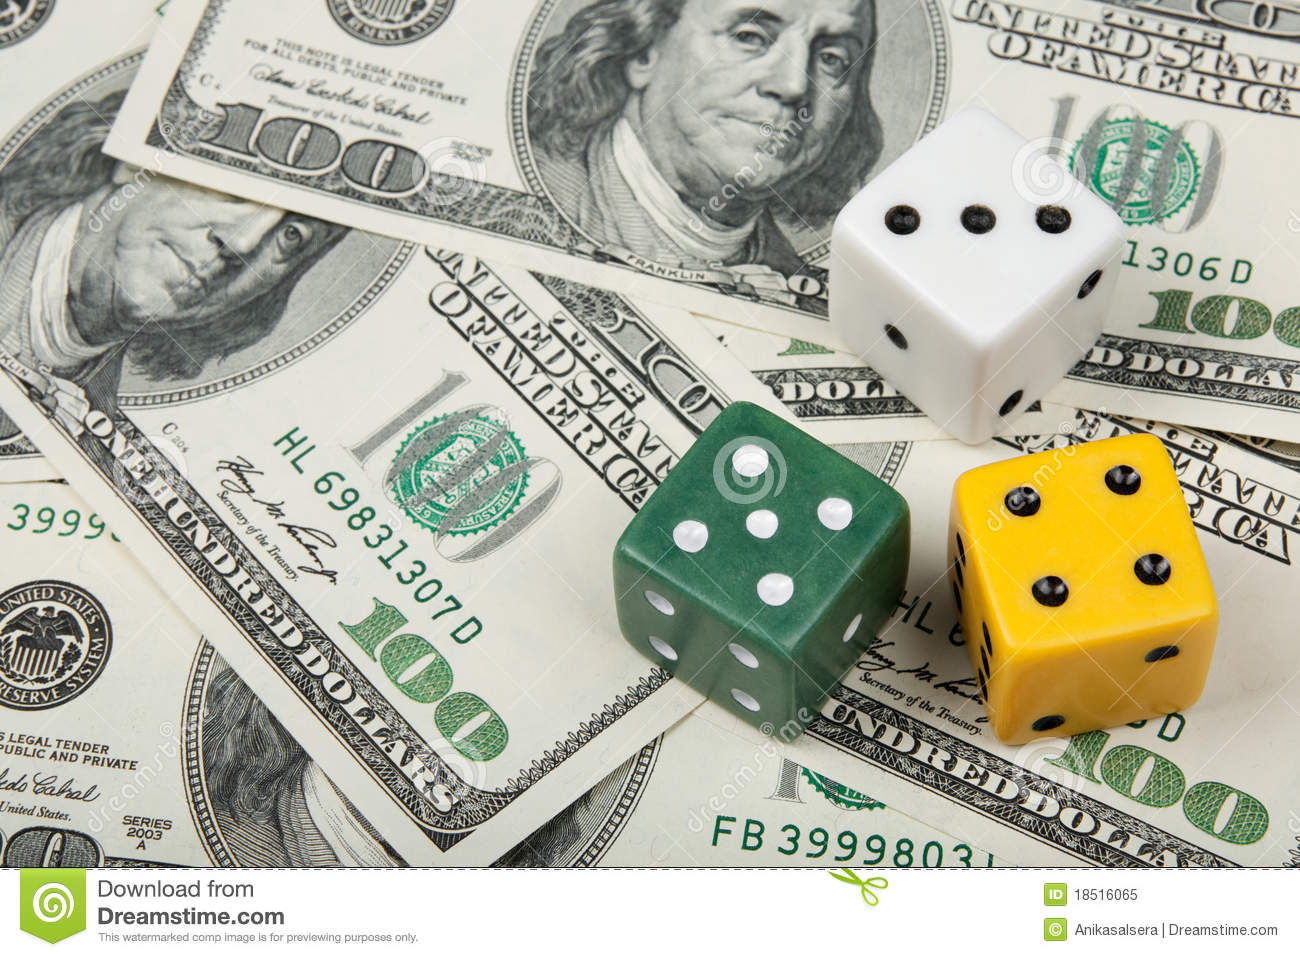 Dices of different colors on money background